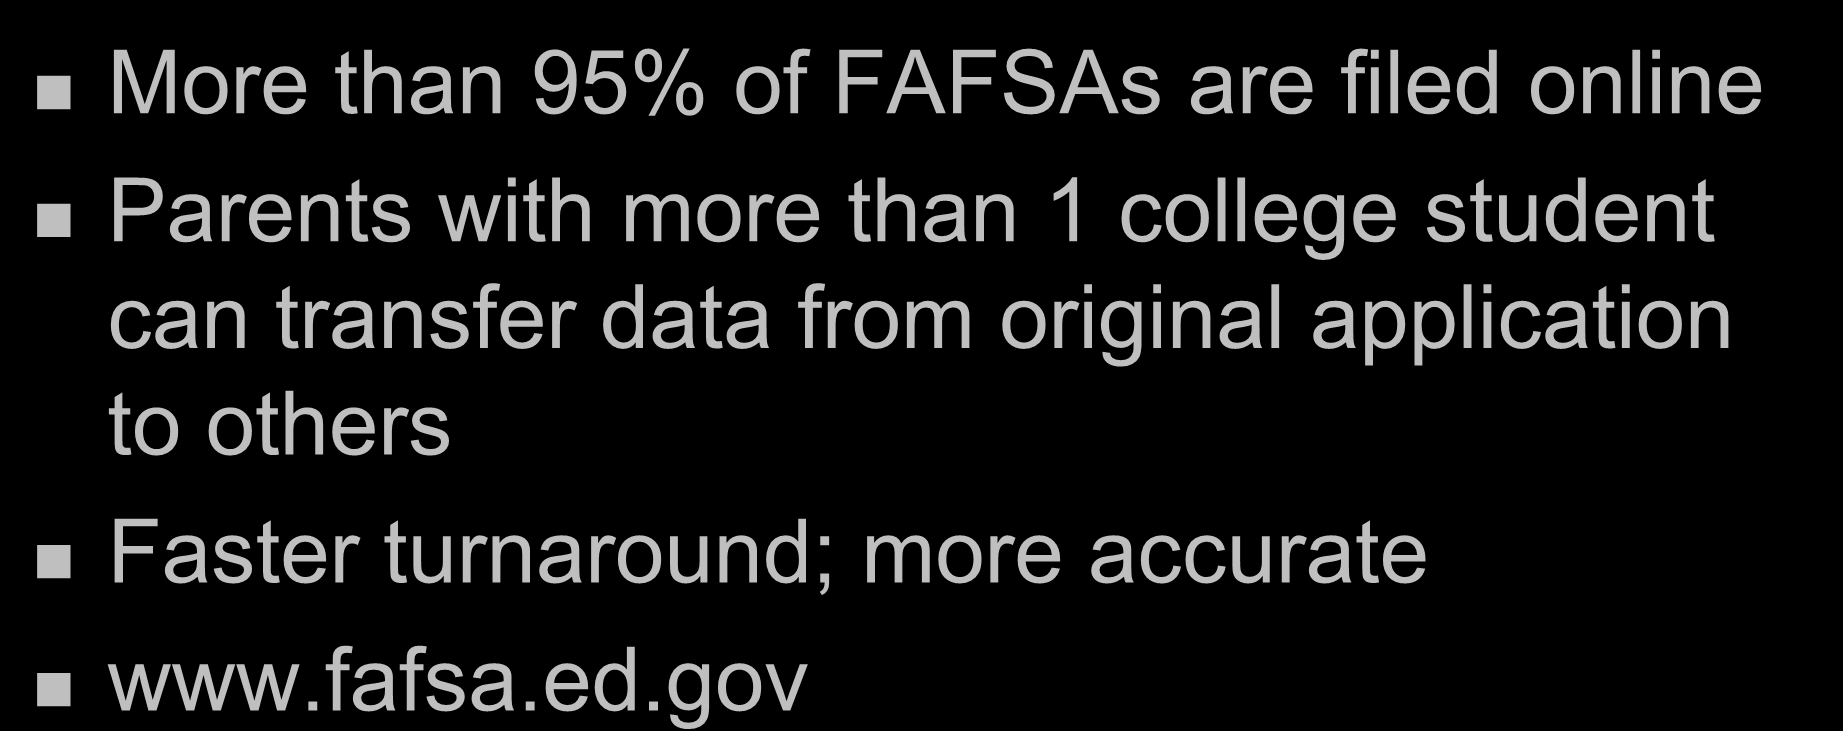 Completing FAFSA on the Web More than 95% of FAFSAs are filed online Parents with more than 1 college